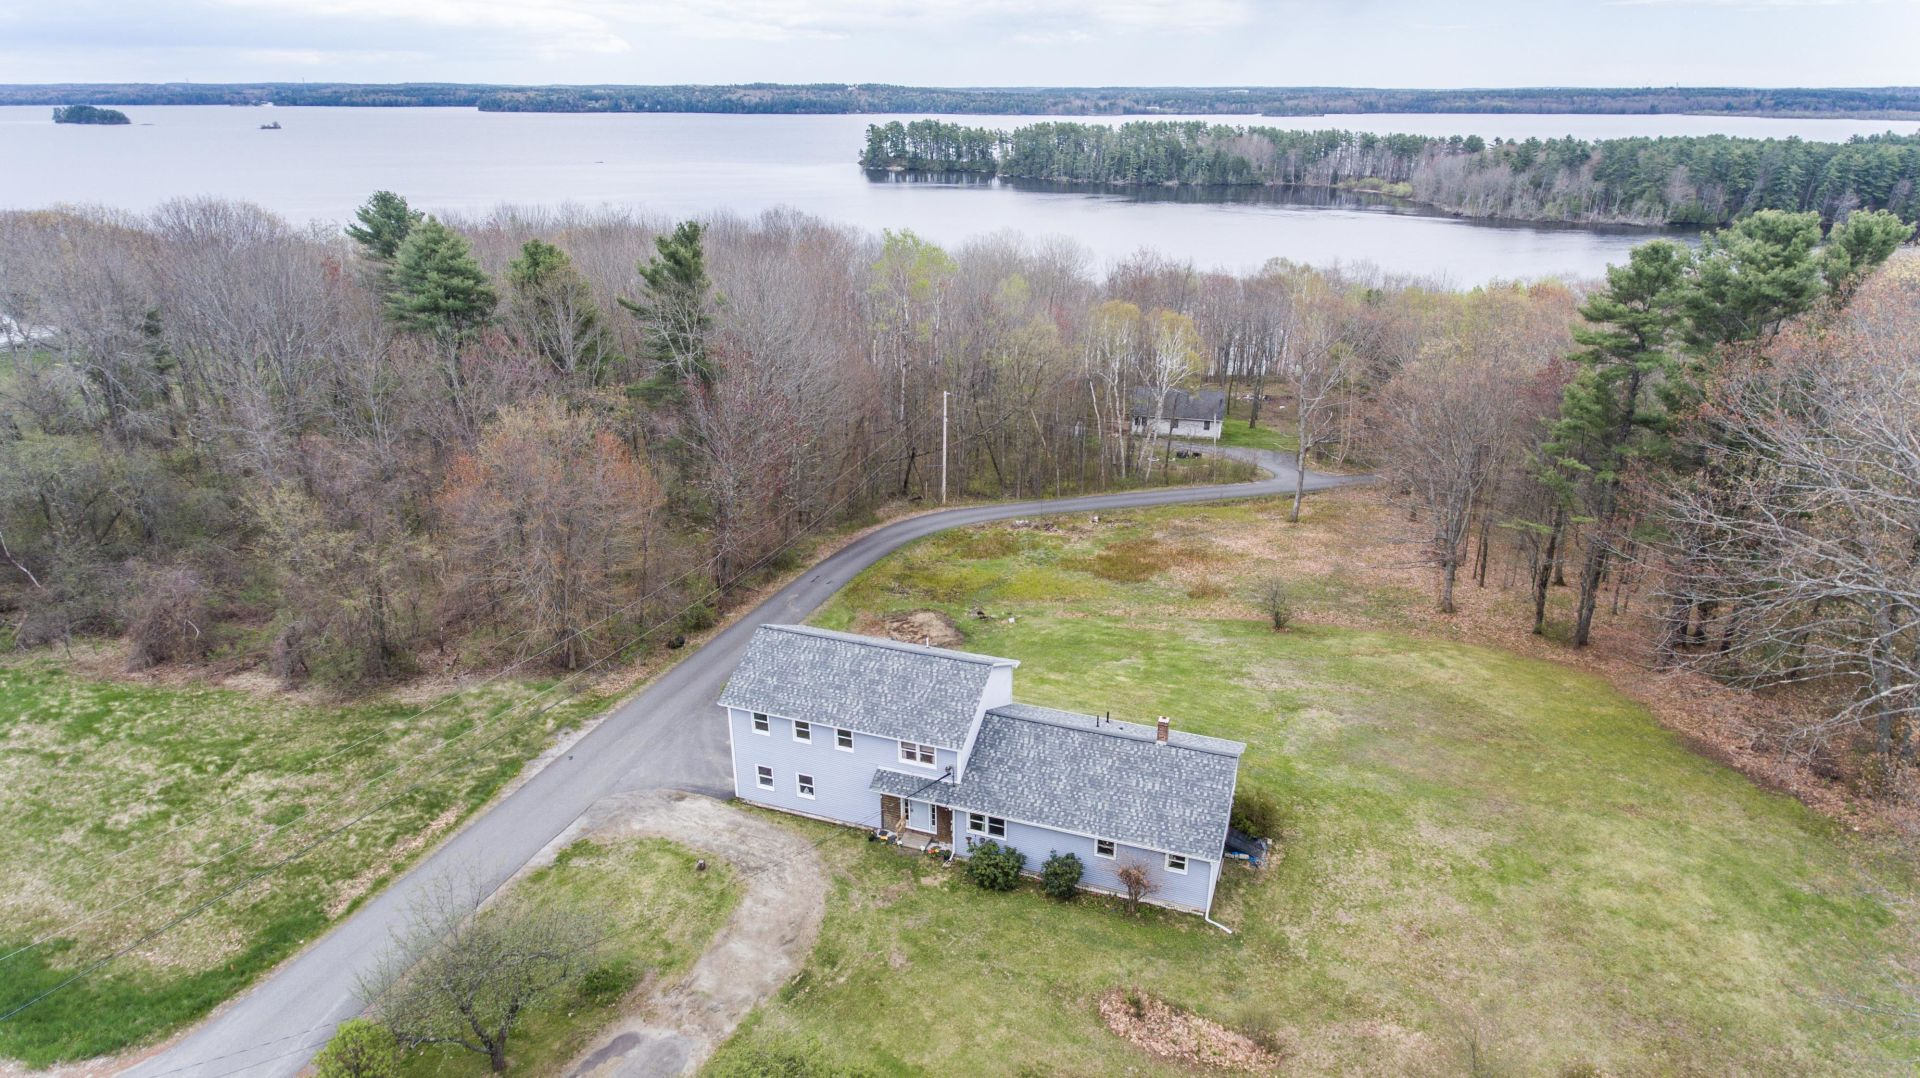 JUST LISTED – 520 Bay Road, Bowdoinham, ME